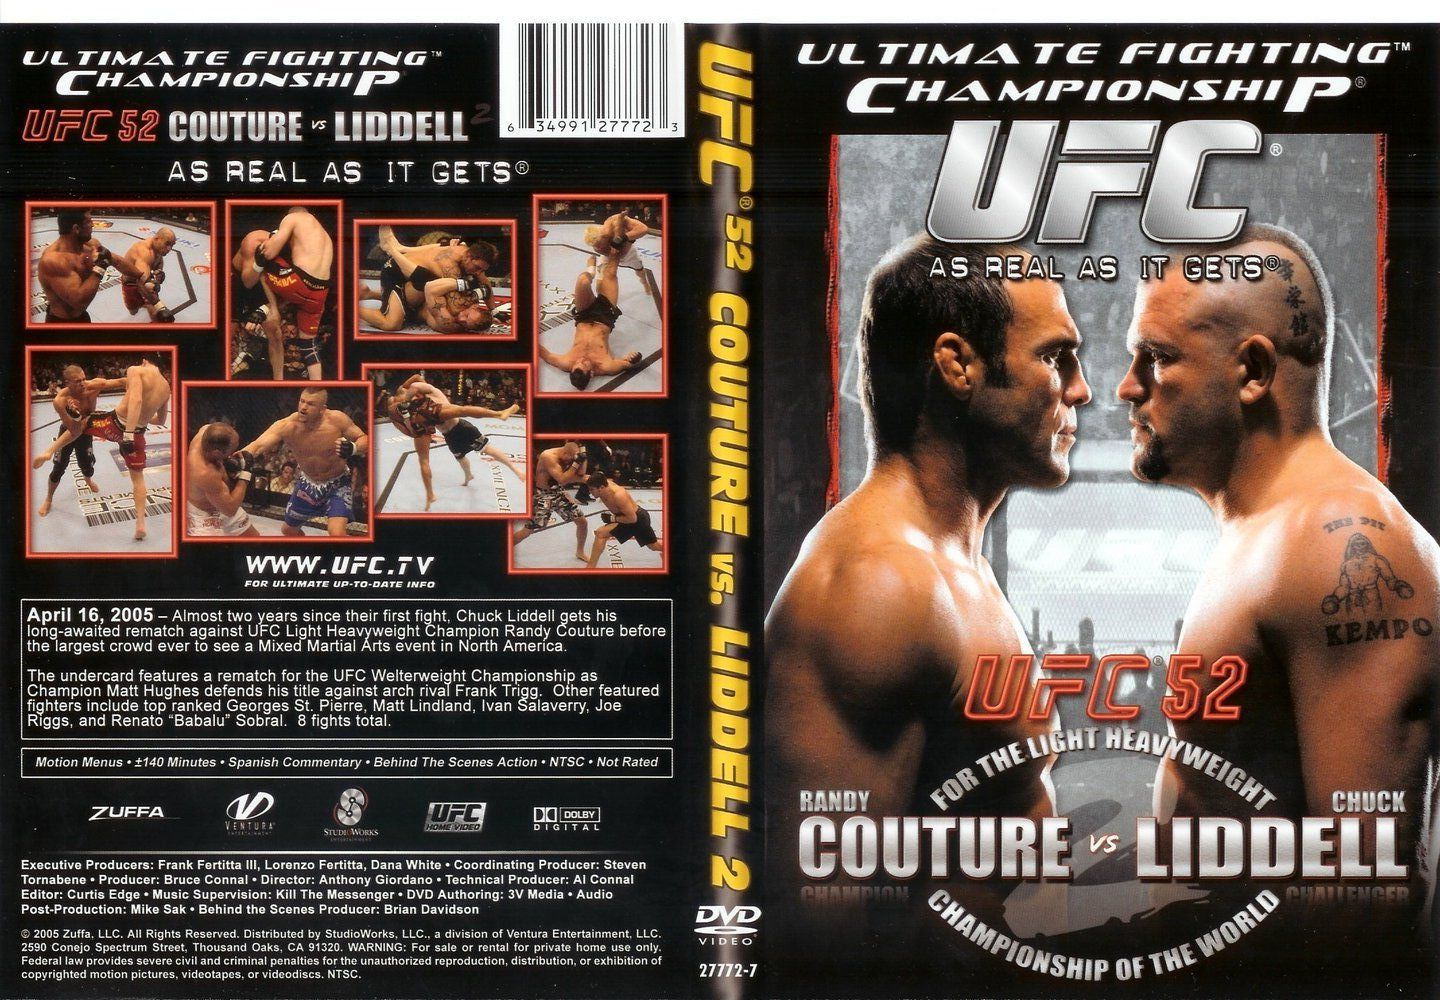 Ultimate Fighting Championship Ufc 52 Couture Vs Liddell 2 Dvd Ultimate Fighting Championship Ufc Mixed Martial Arts